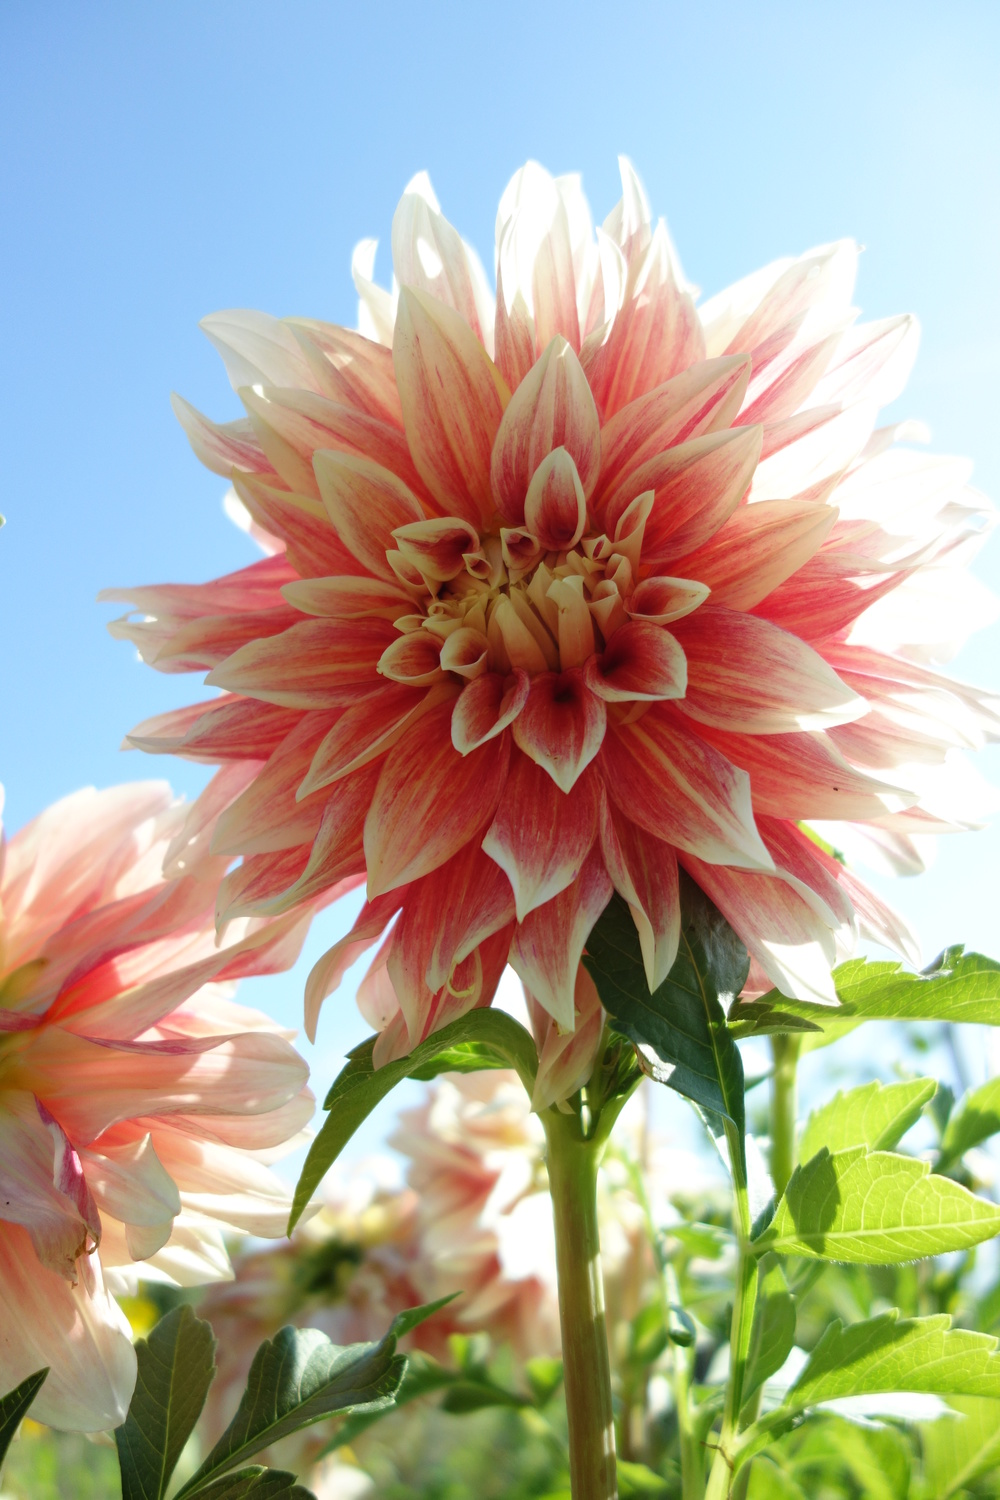 Late Summer Dahlia by Ann Marie Popko